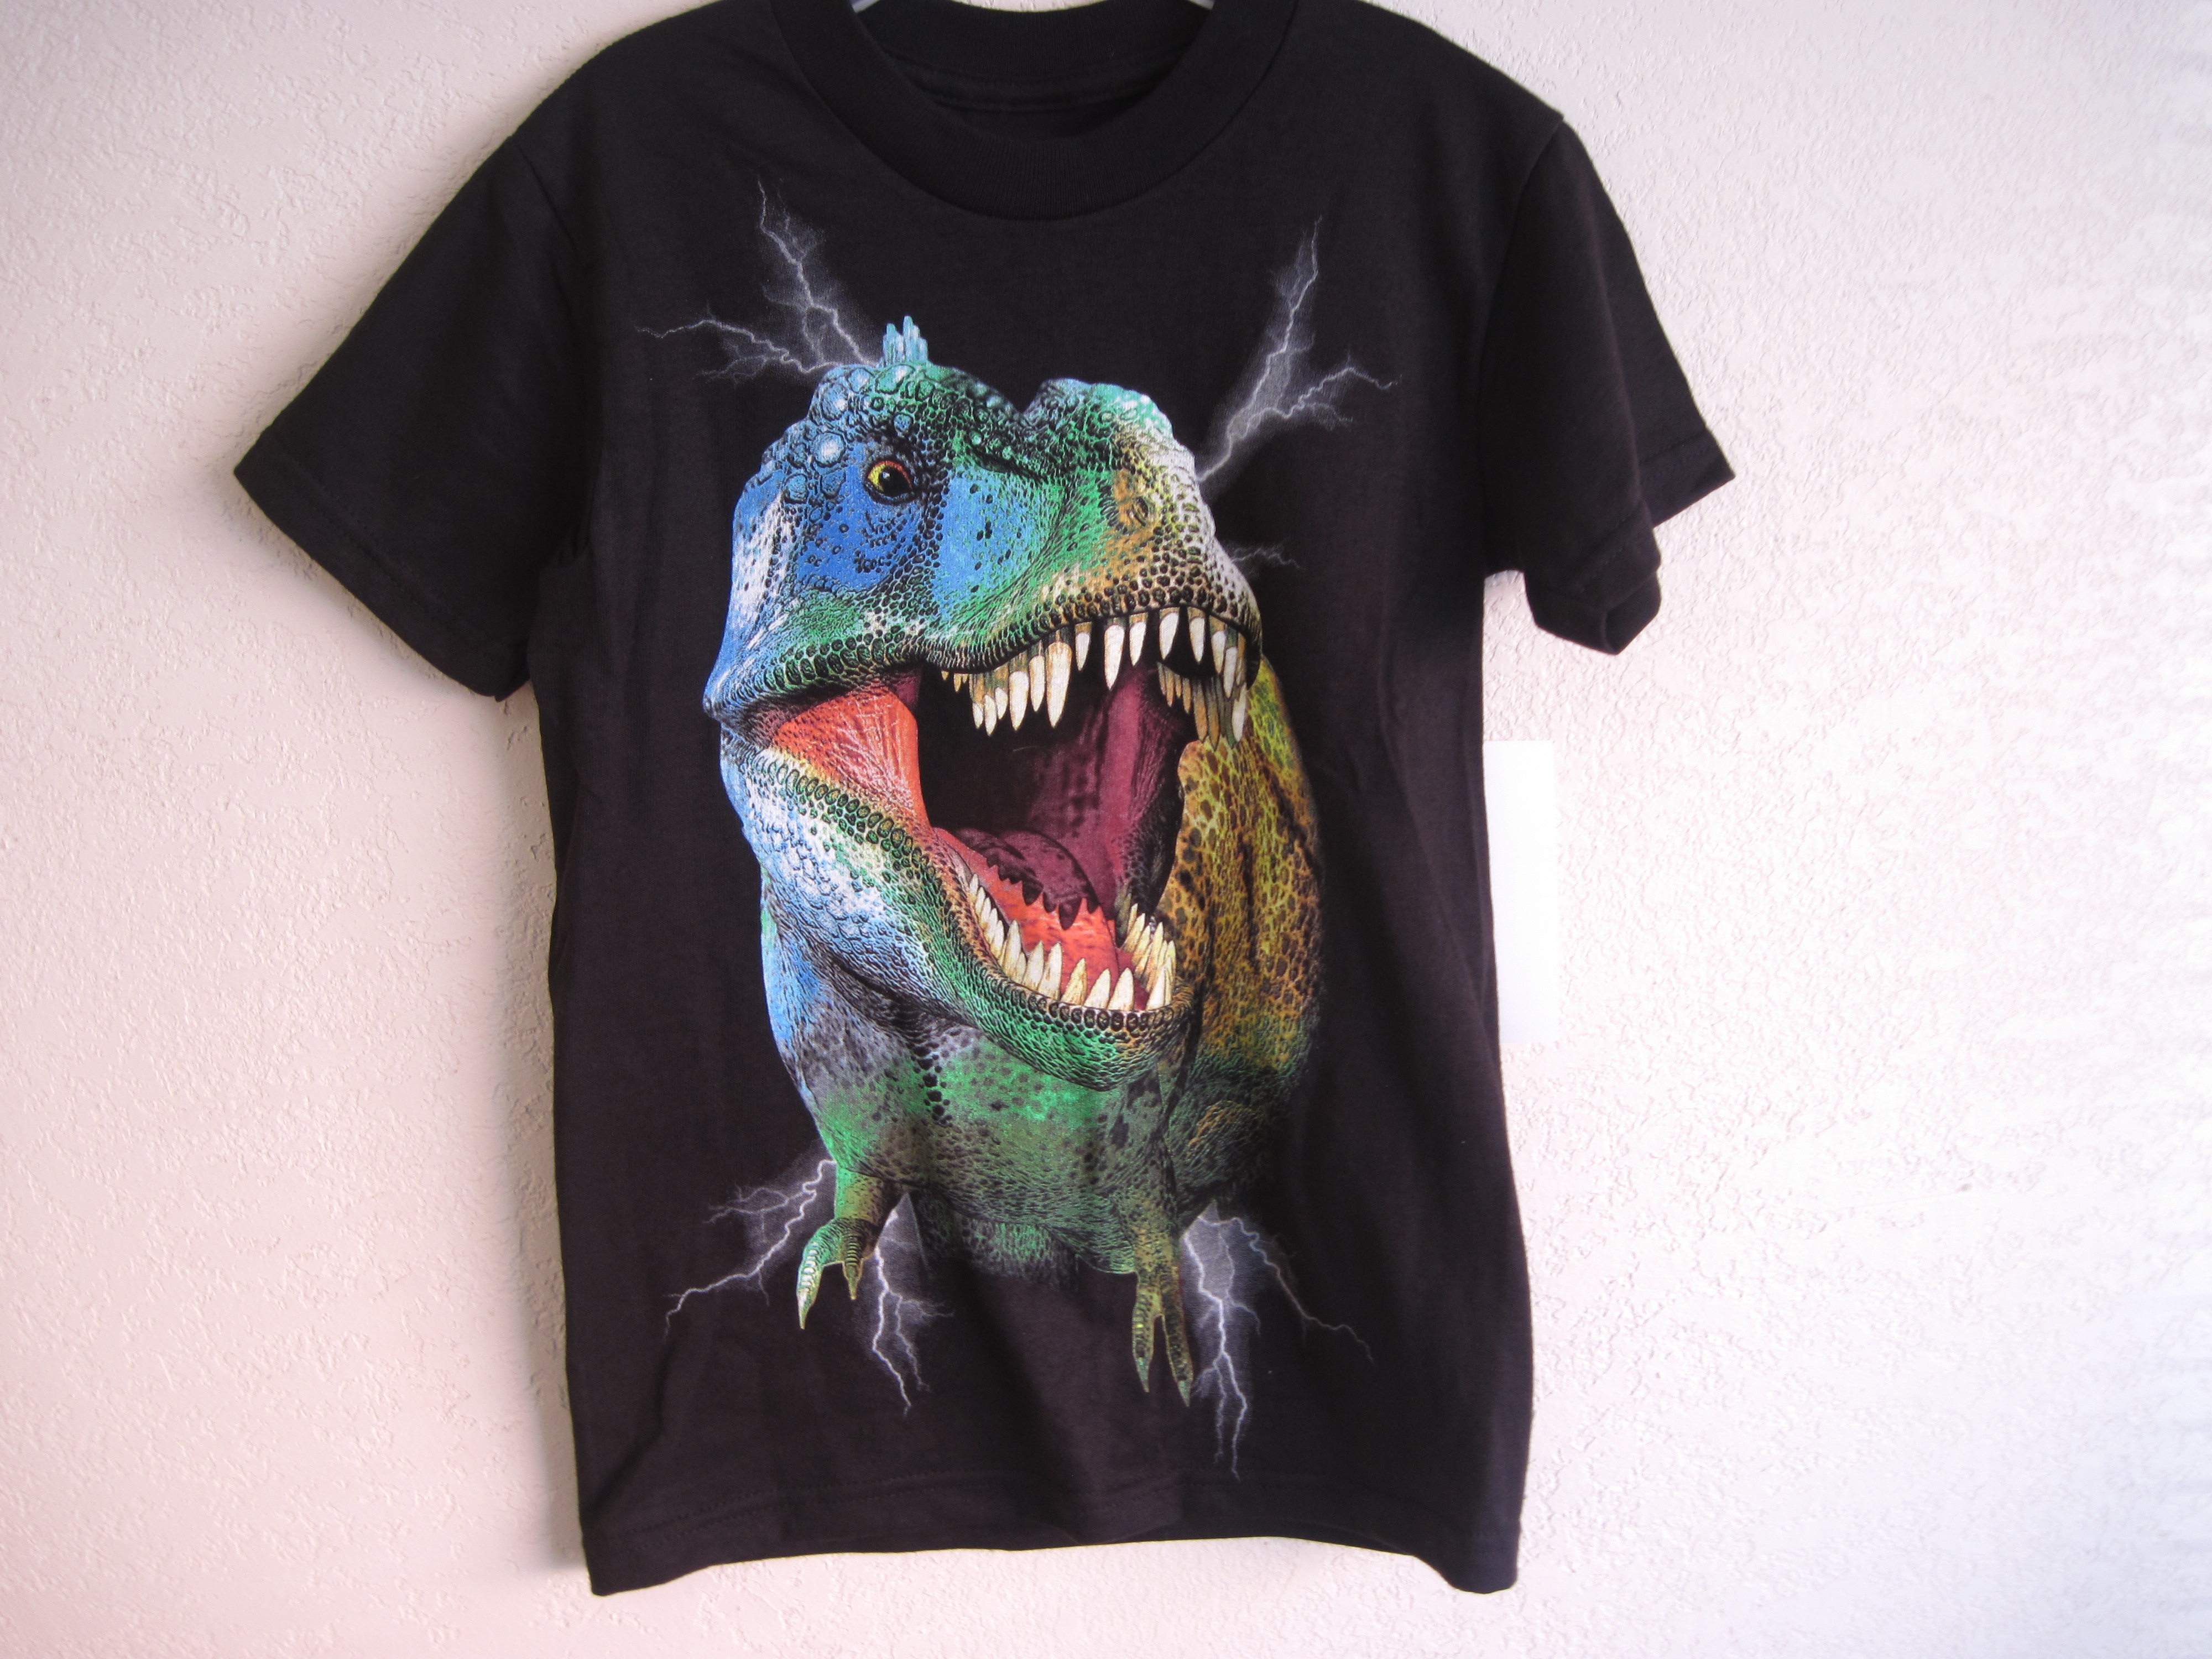 Hudson Creek Sz M 7 T-Rex T-Shirt (black)